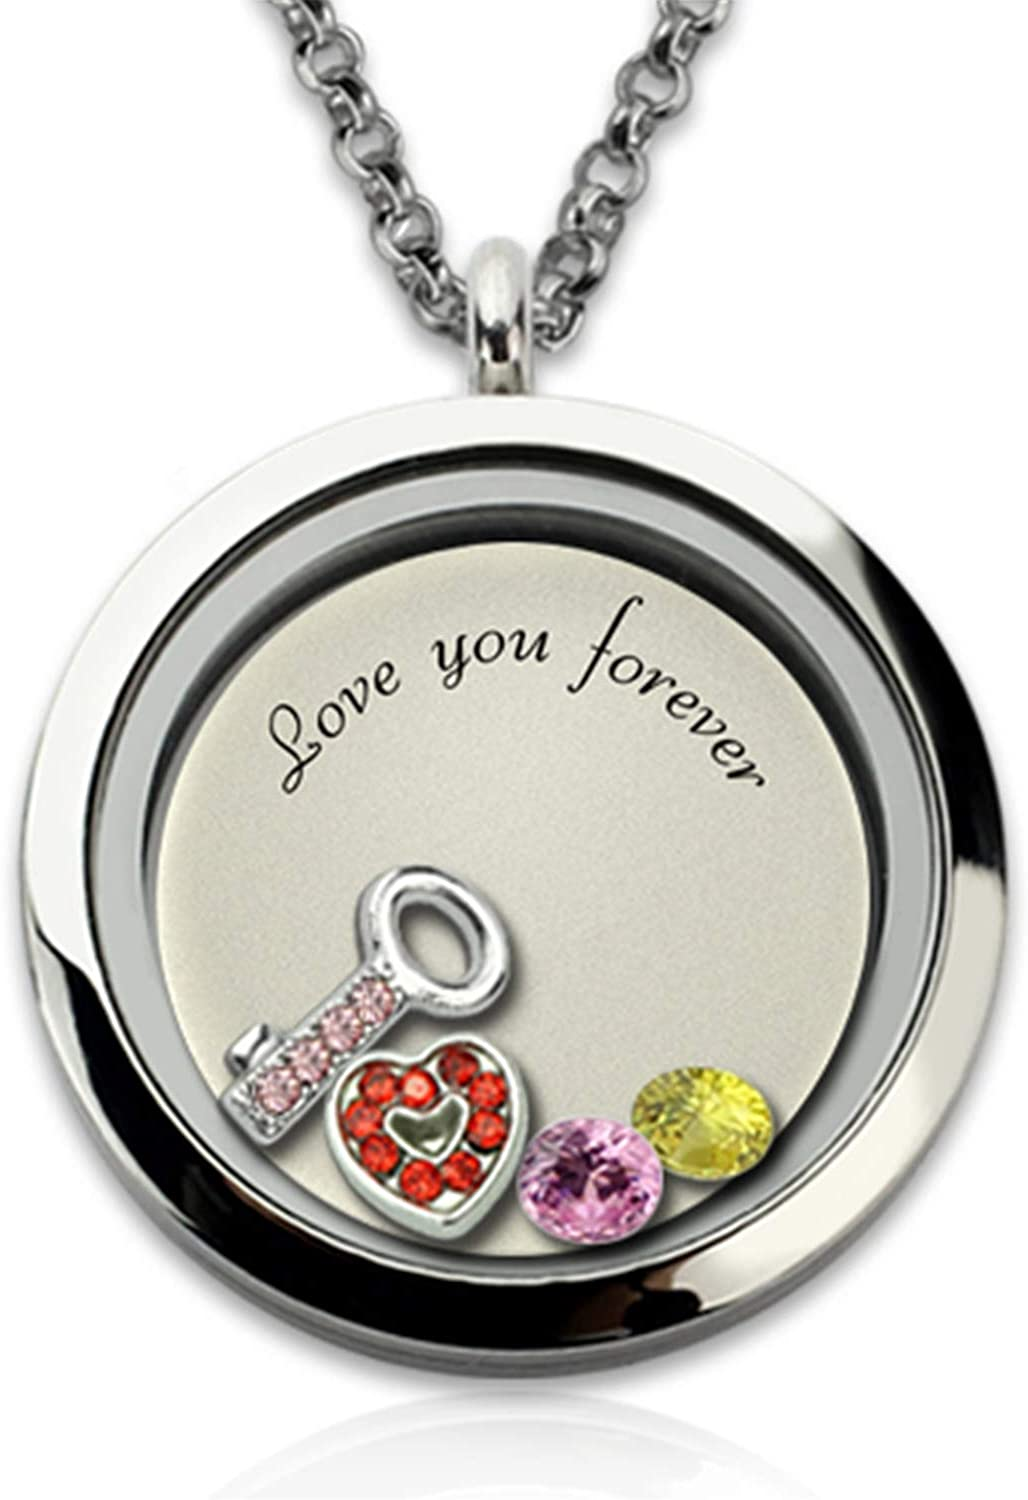 Getname Necklace Key to My Heart Floating Locket Customized 2 Birthstones Small Key and Heart Stainless Steel Pendant Necklace Necklace Locket Pendant